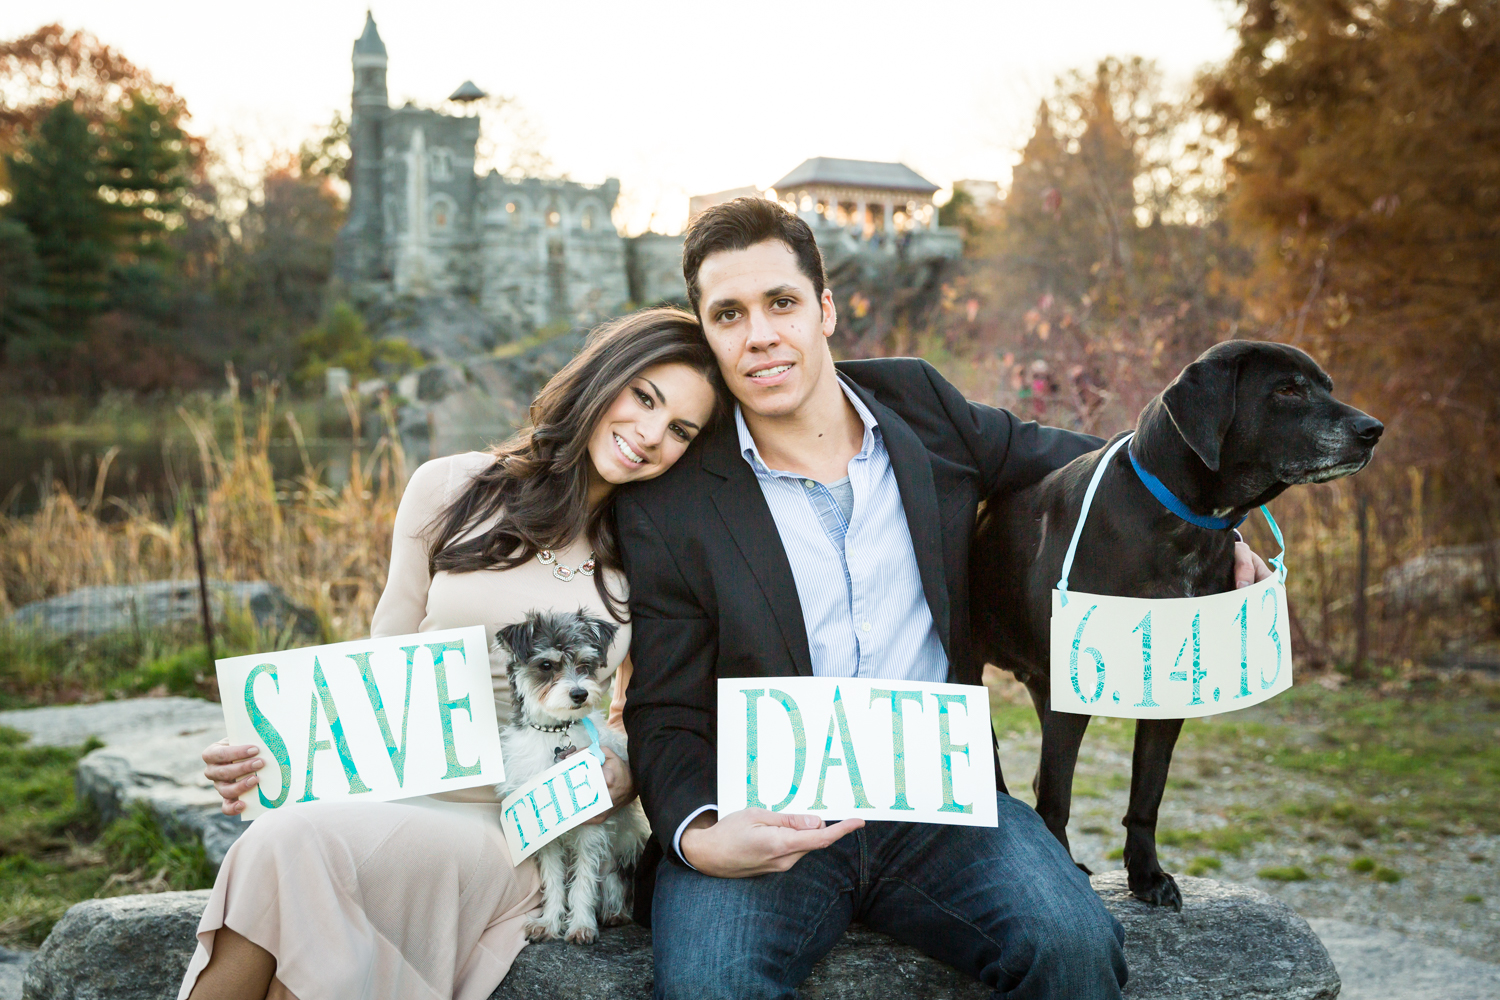 Central Park save-the-date photos of couple sitting on rock with two dogs holding sign